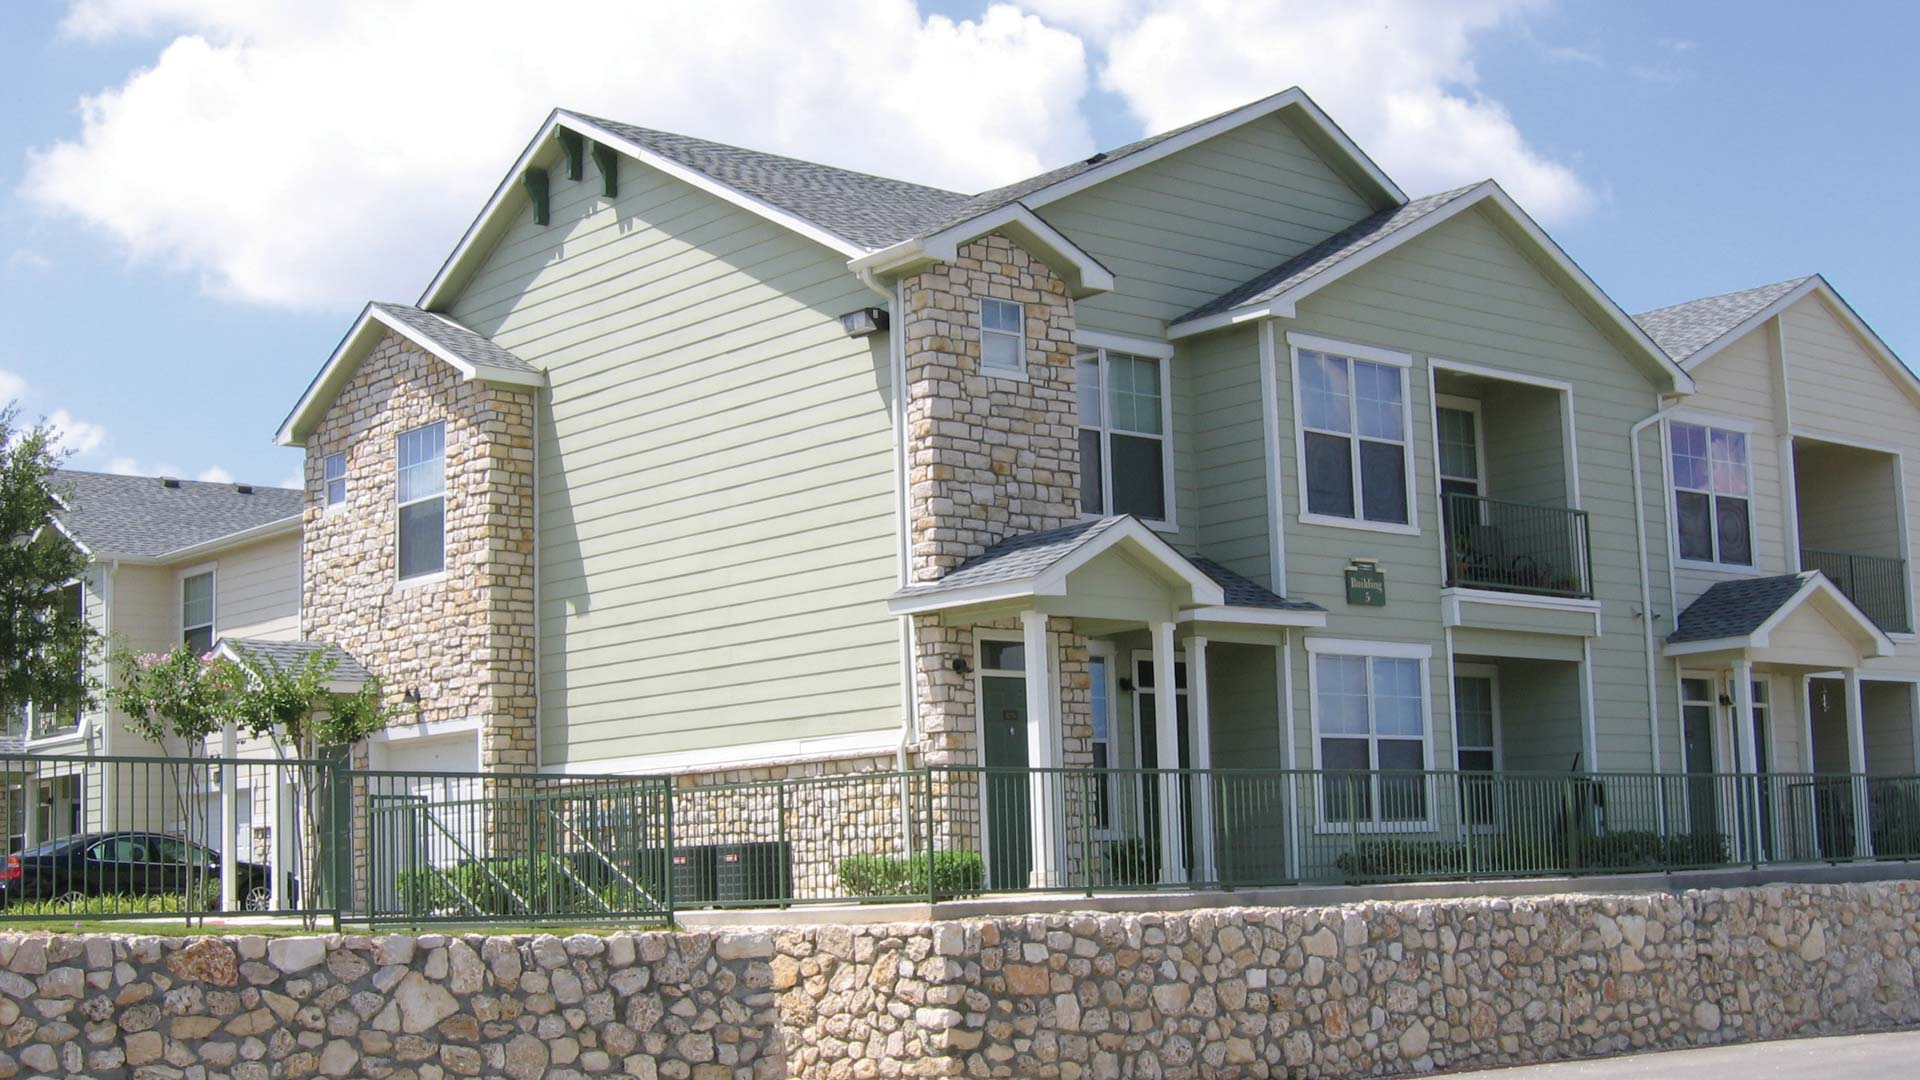 Townhome Exterior at Springs at Live Oak in Live Oak